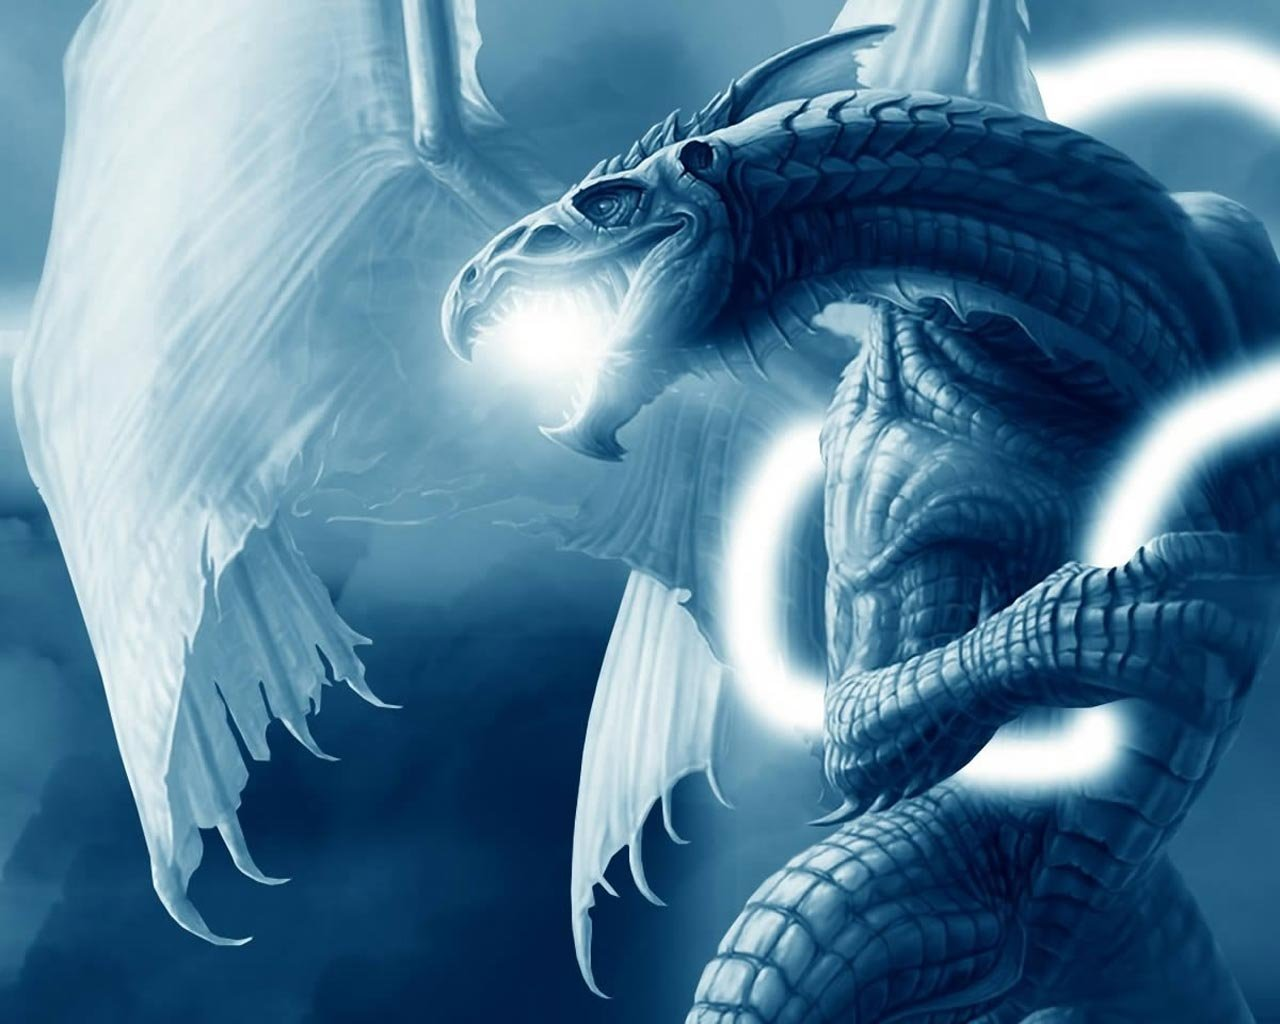 the blue dragon wallpapers wallpaper for background